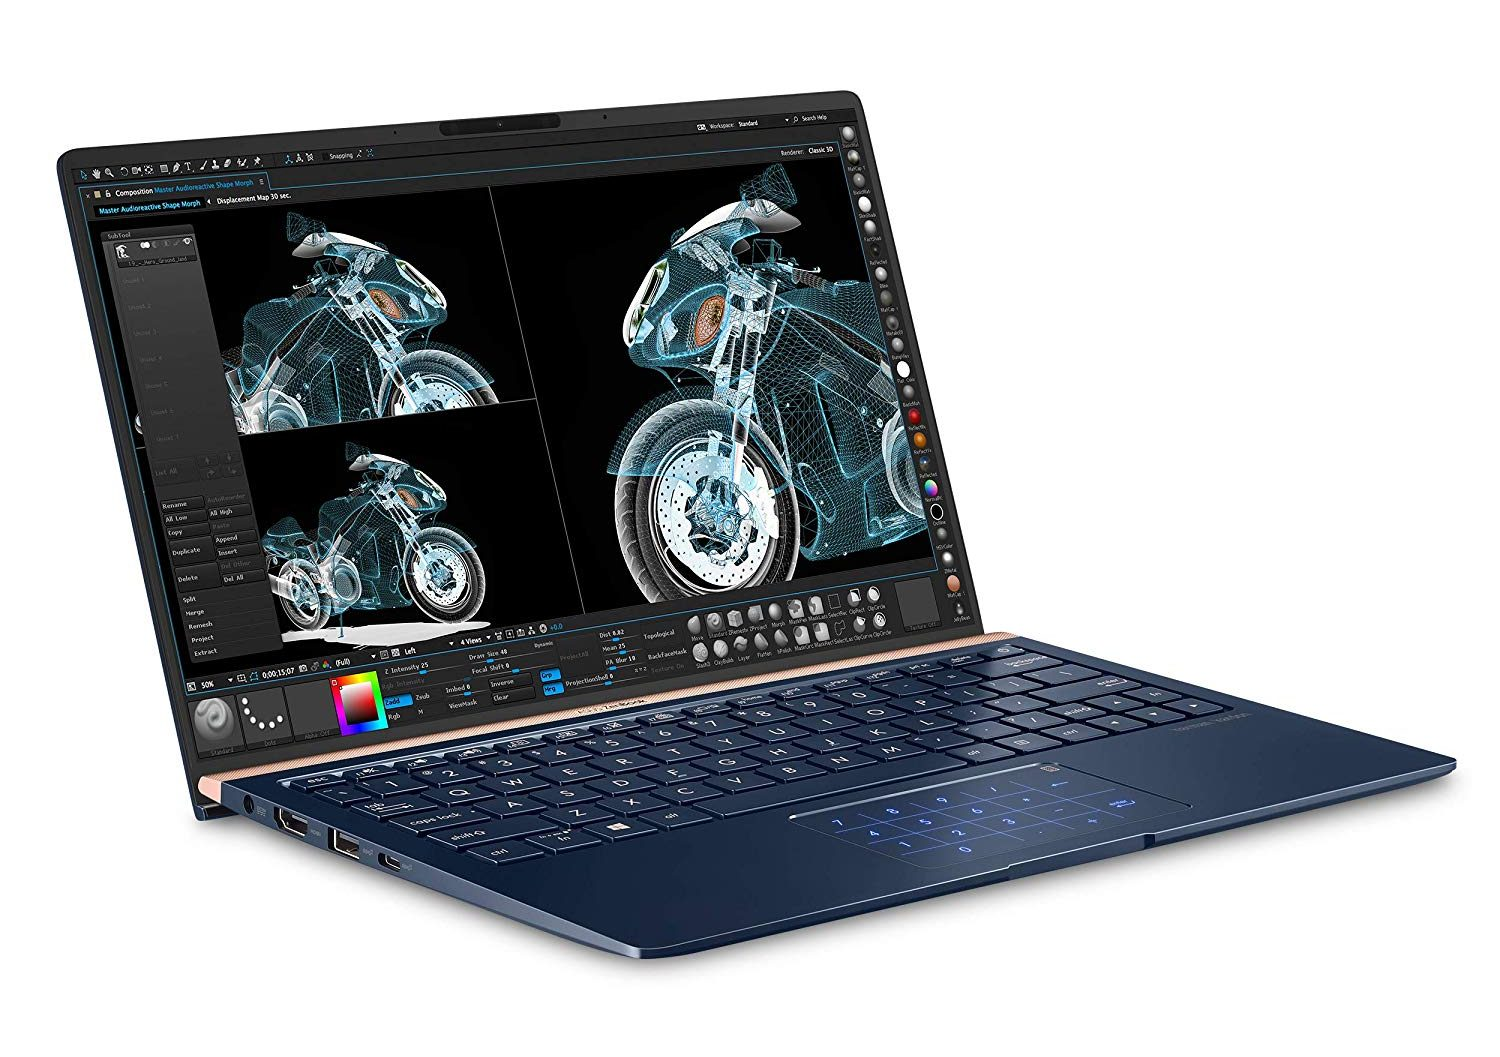 asus zenbook laptop for college students